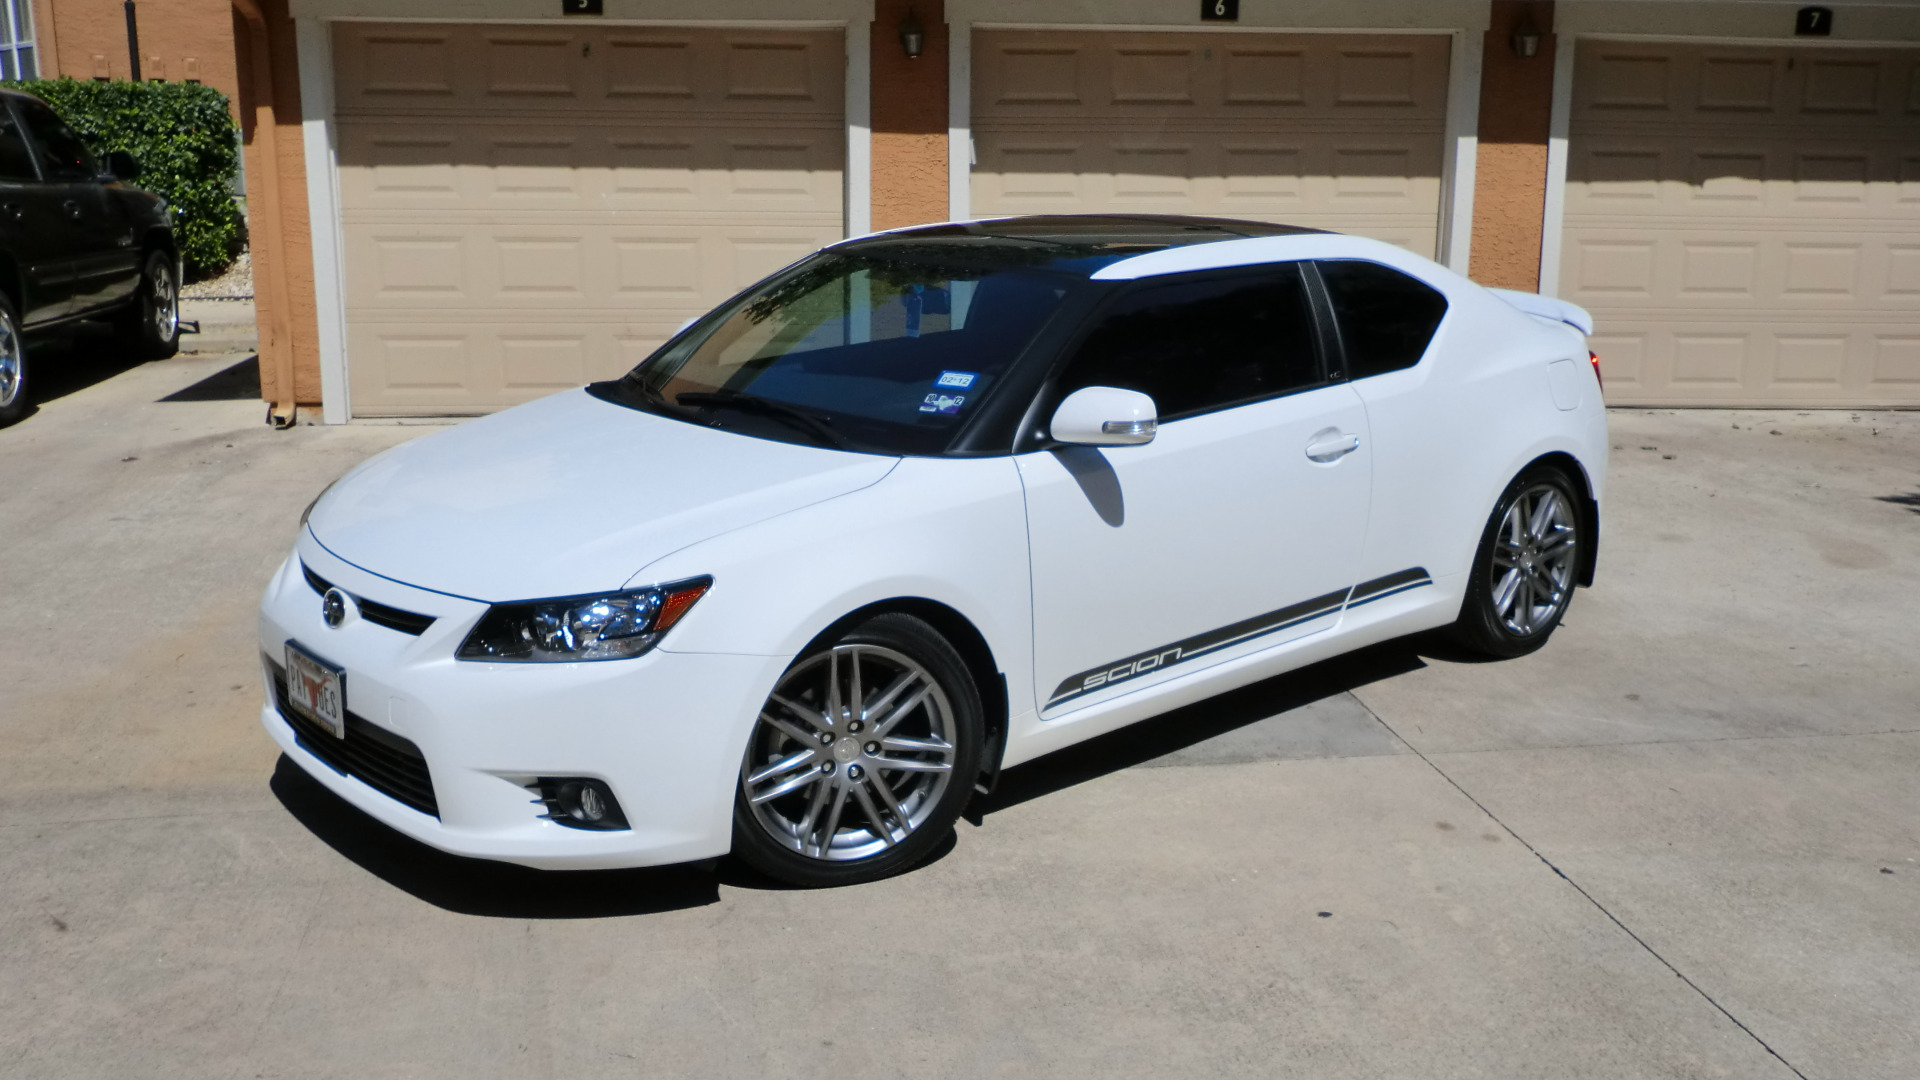 2011 scion tc – pictures, information and specs - auto-database